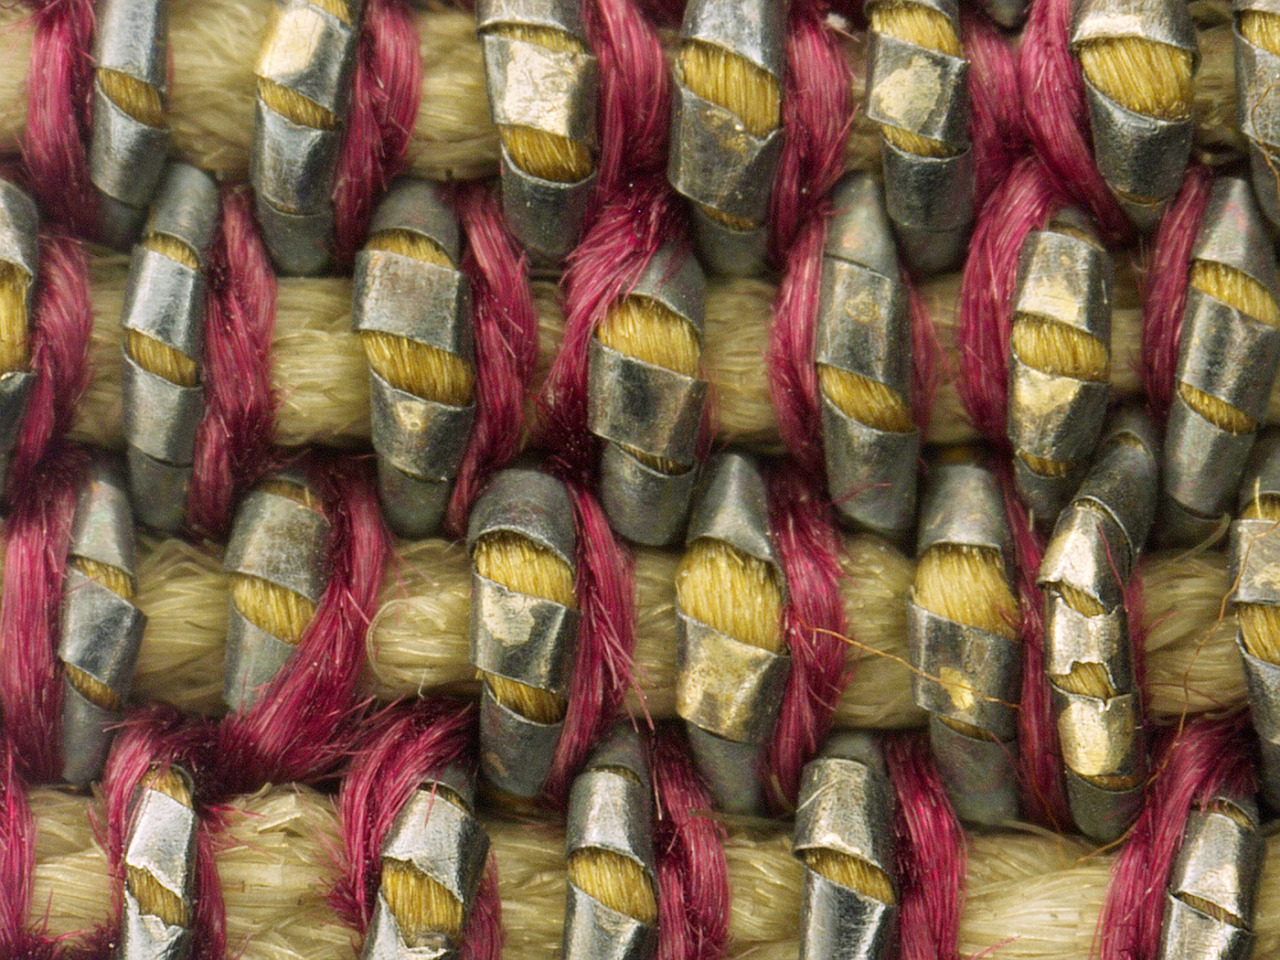 This photomicrograph shows the warp and weft threads used to create a background detail in the Triumph of Bacchus tapestry.